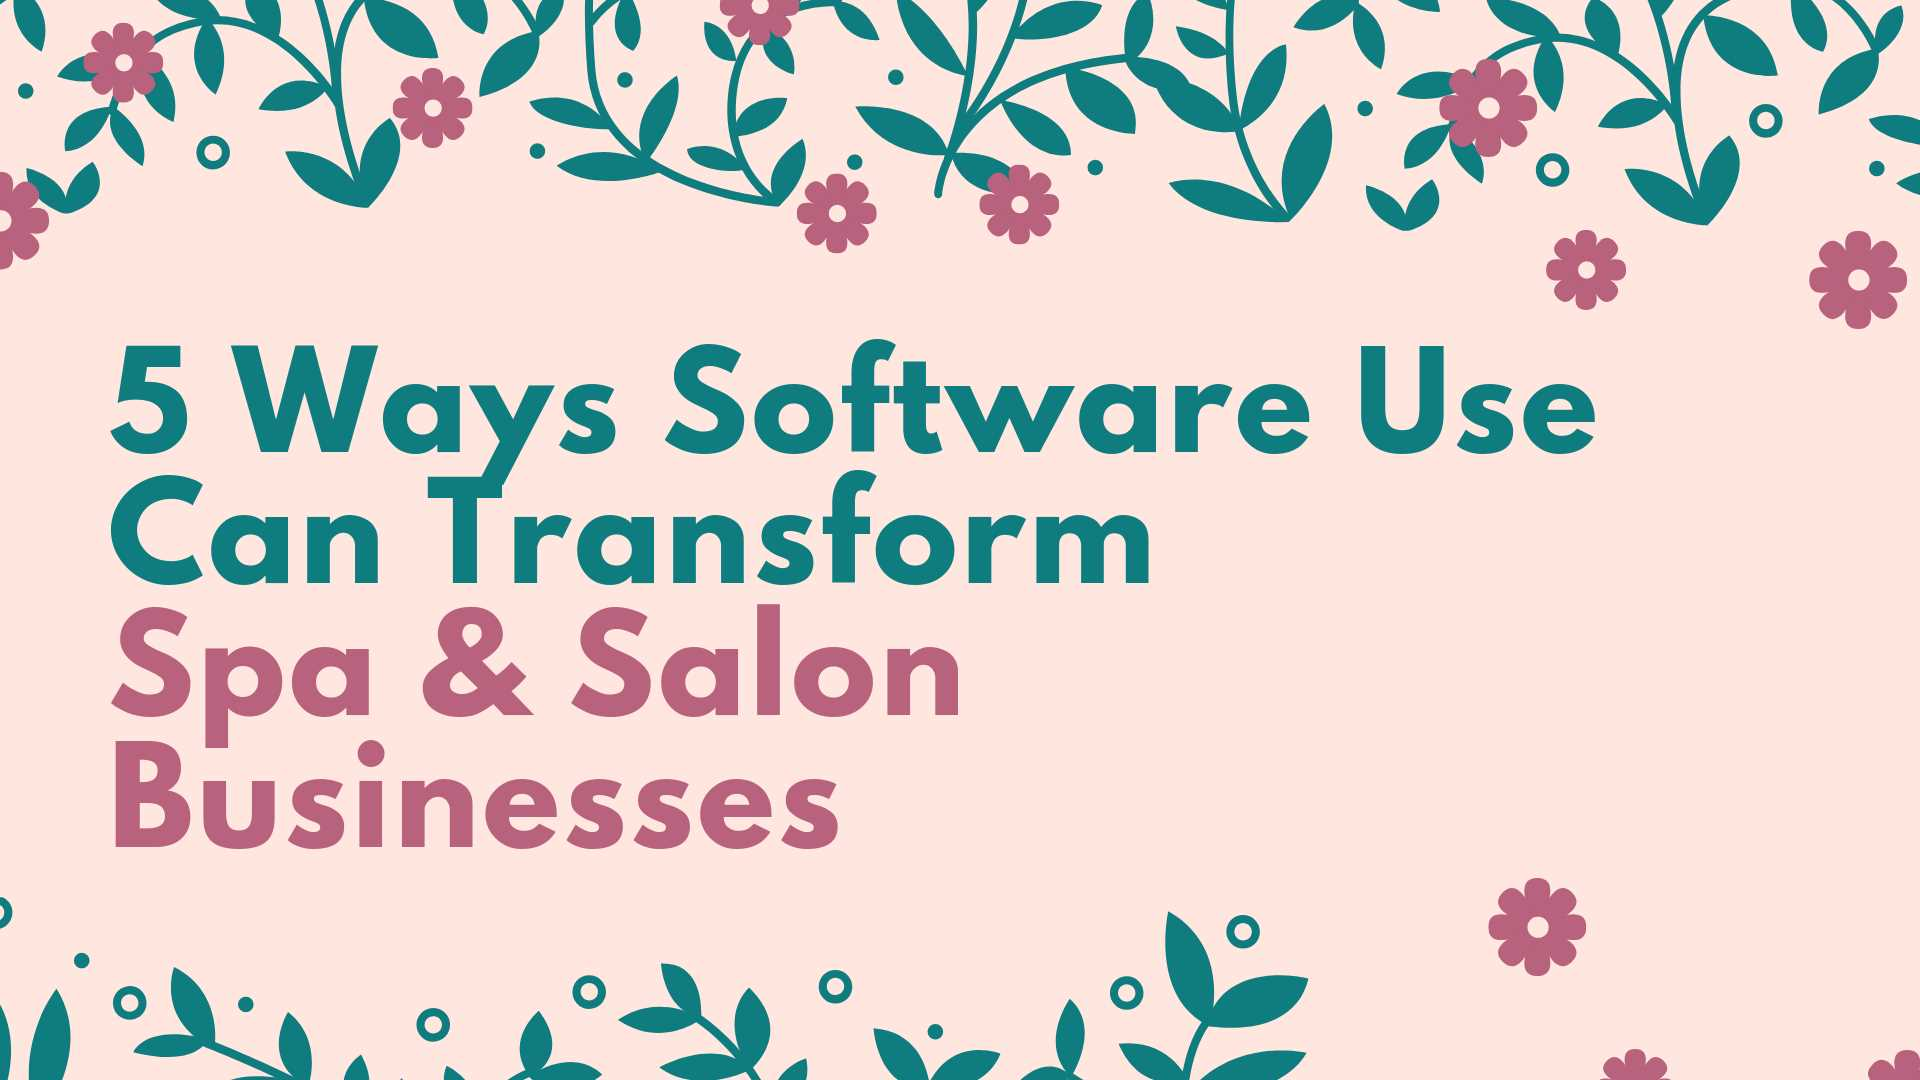 5 Ways Software Use Can Transform Spa & Salon Businesses